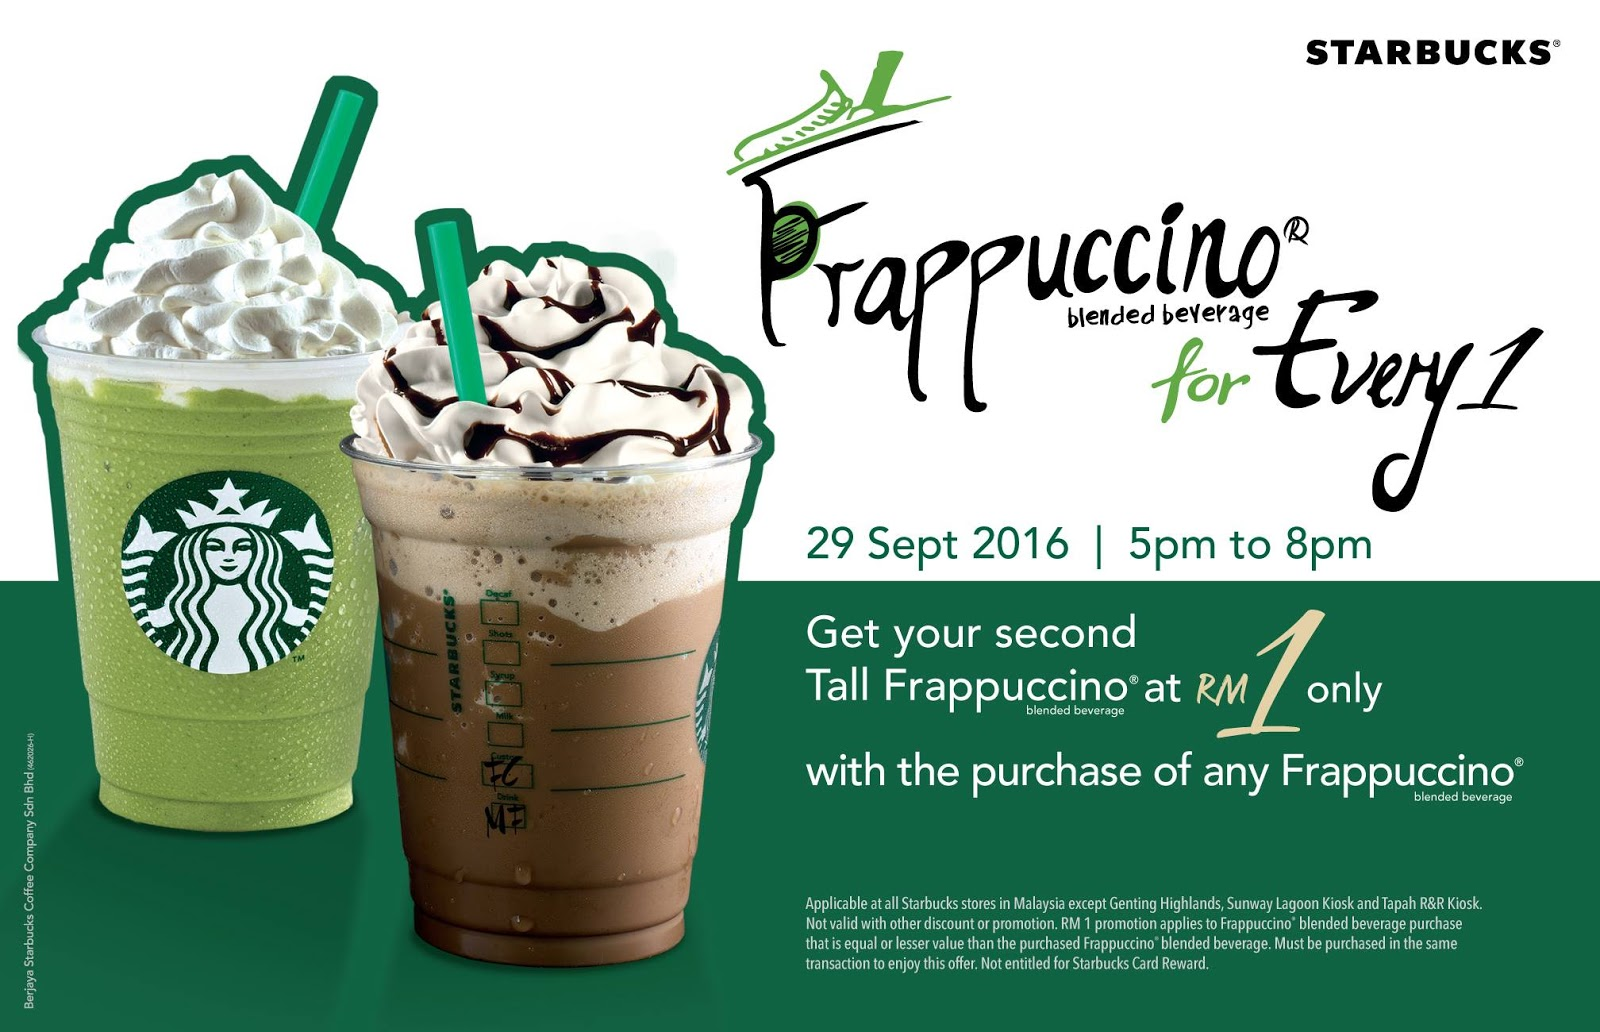 starbucks rm second tall sized frappuccino promotion pm pm  starbucks rm1 second tall sized frappuccino promotion 5pm 8pm 29 2016